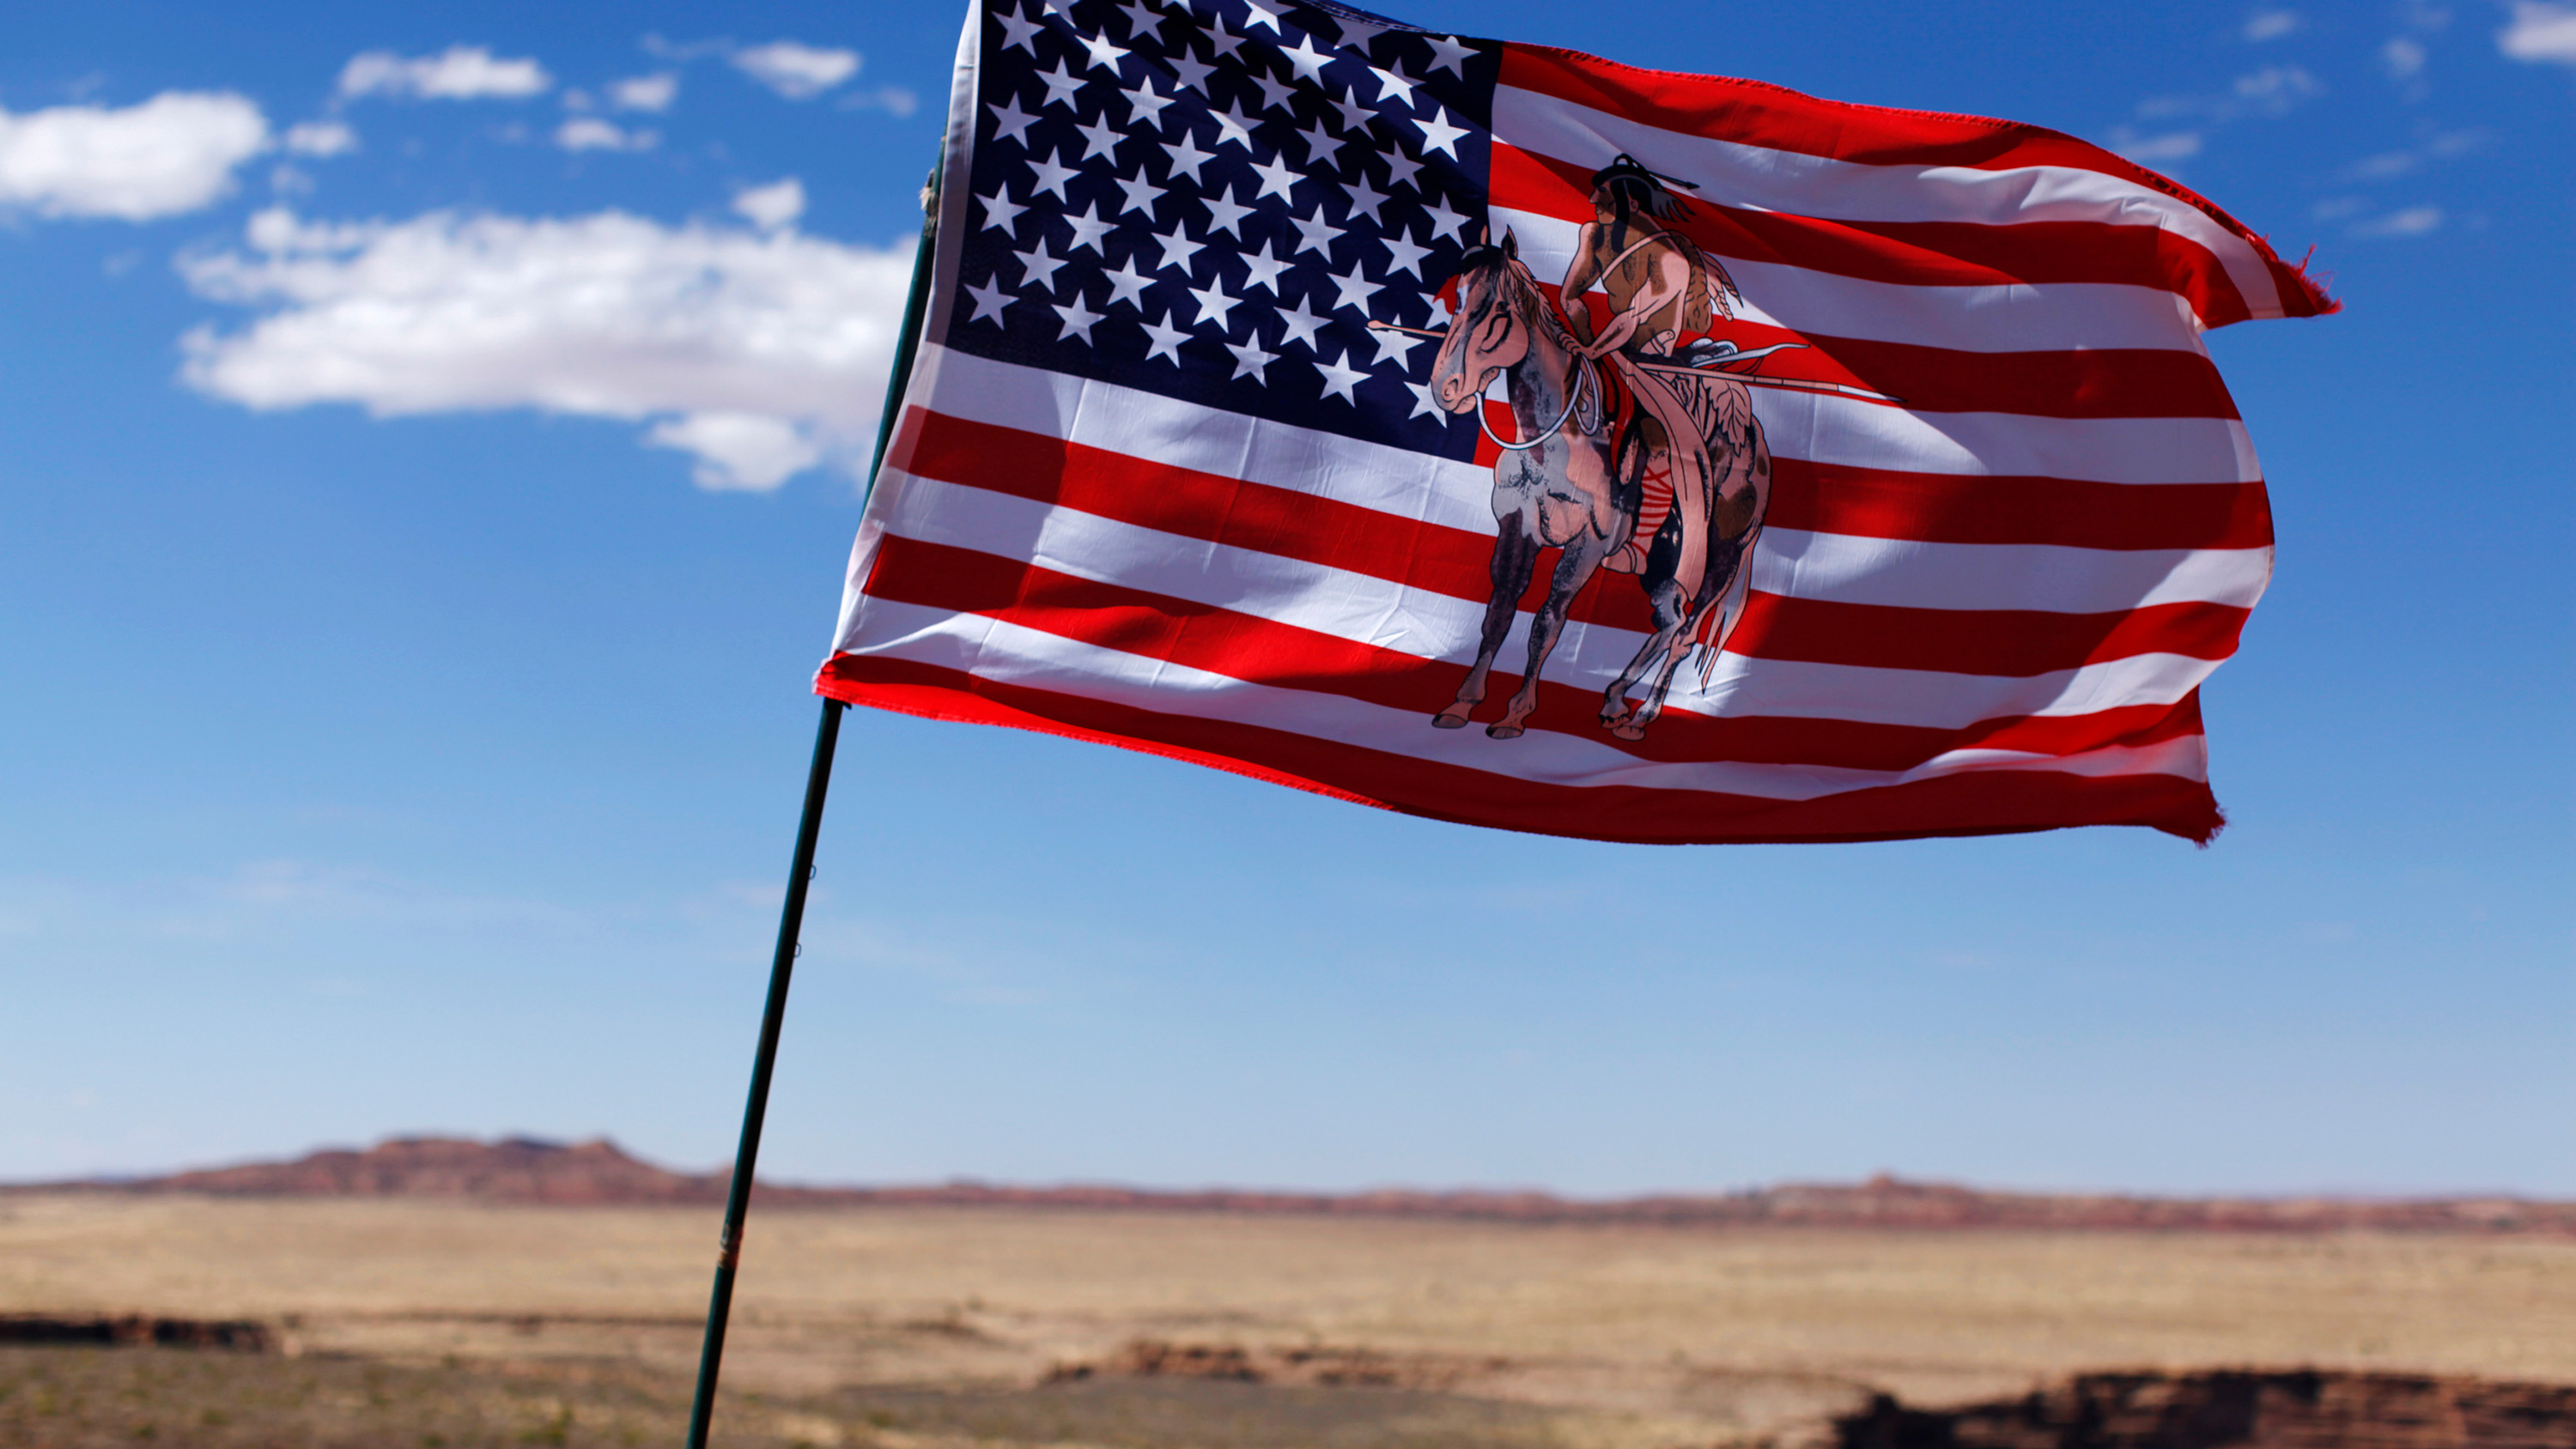 The photo shows a flag blowing in the wind with an Indian horse rider on the flag.